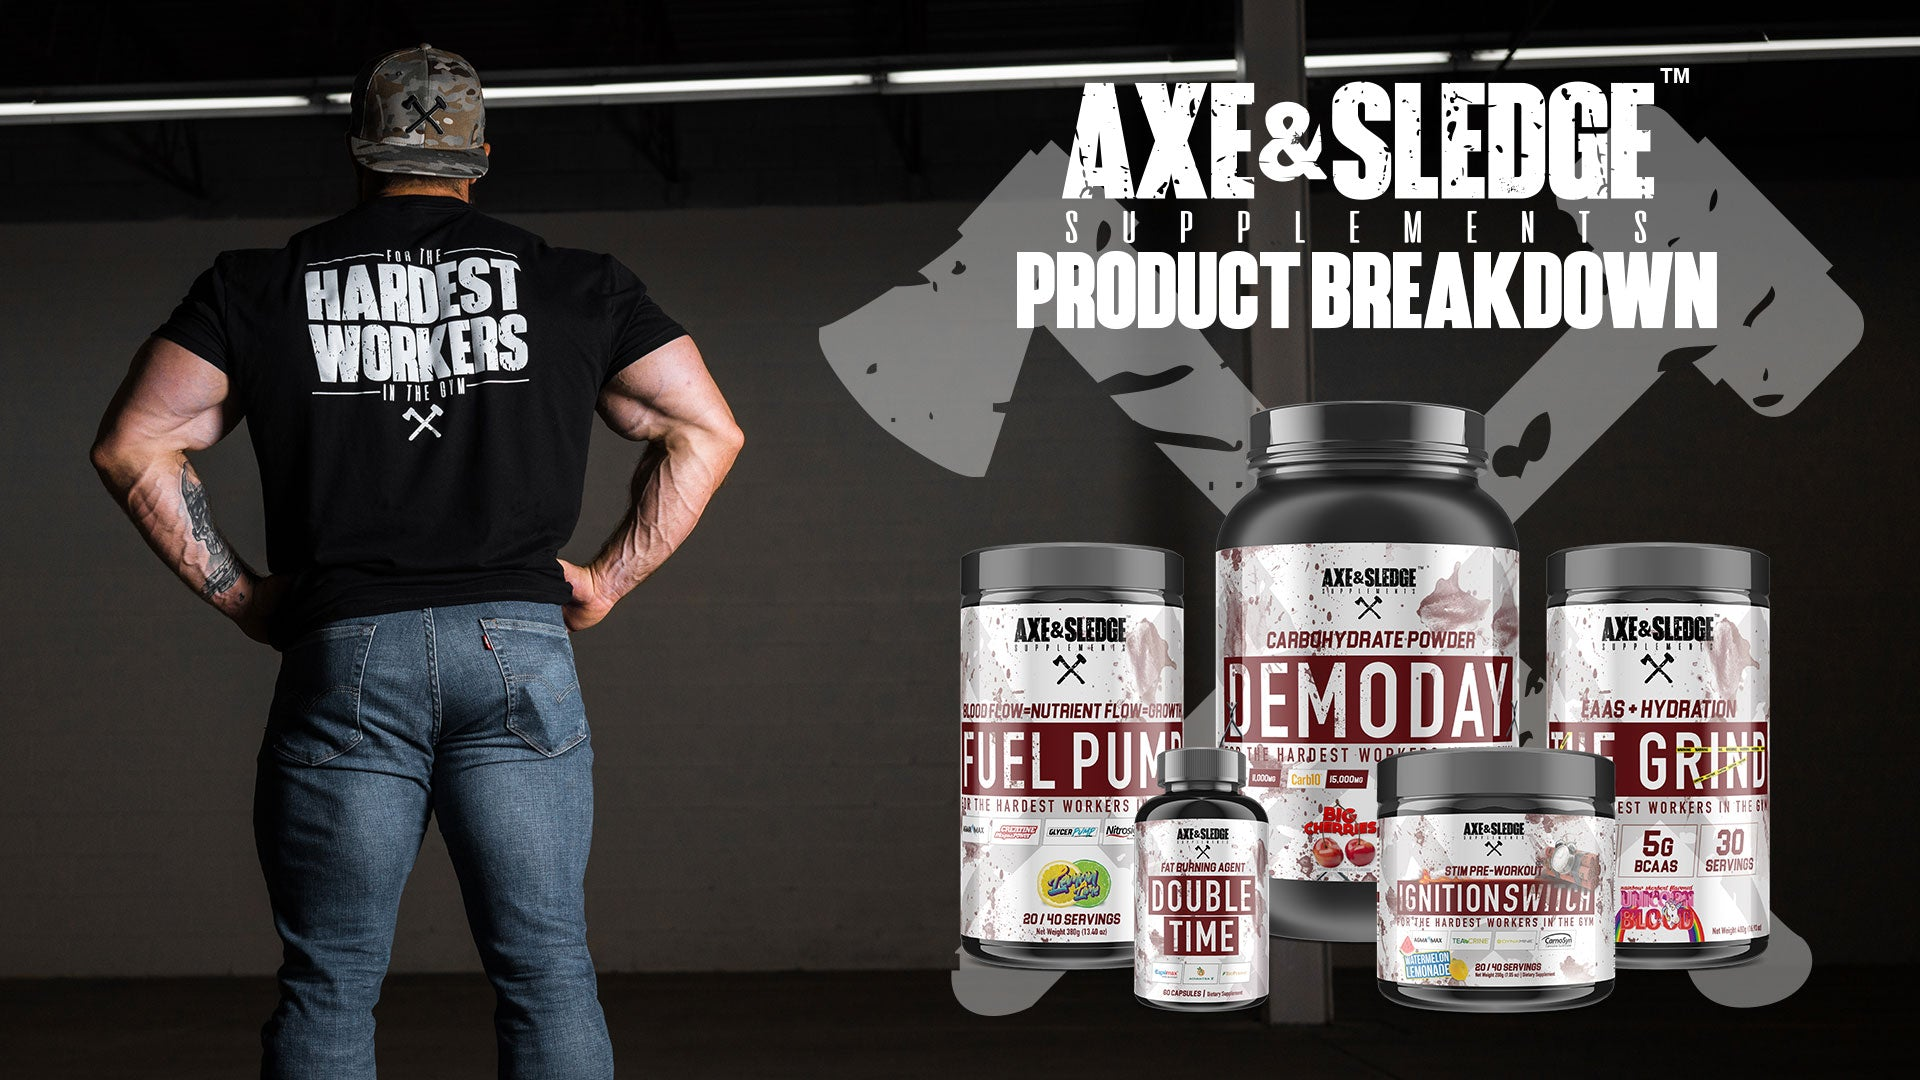 Product Breakdown | Axe & Sledge Supplements